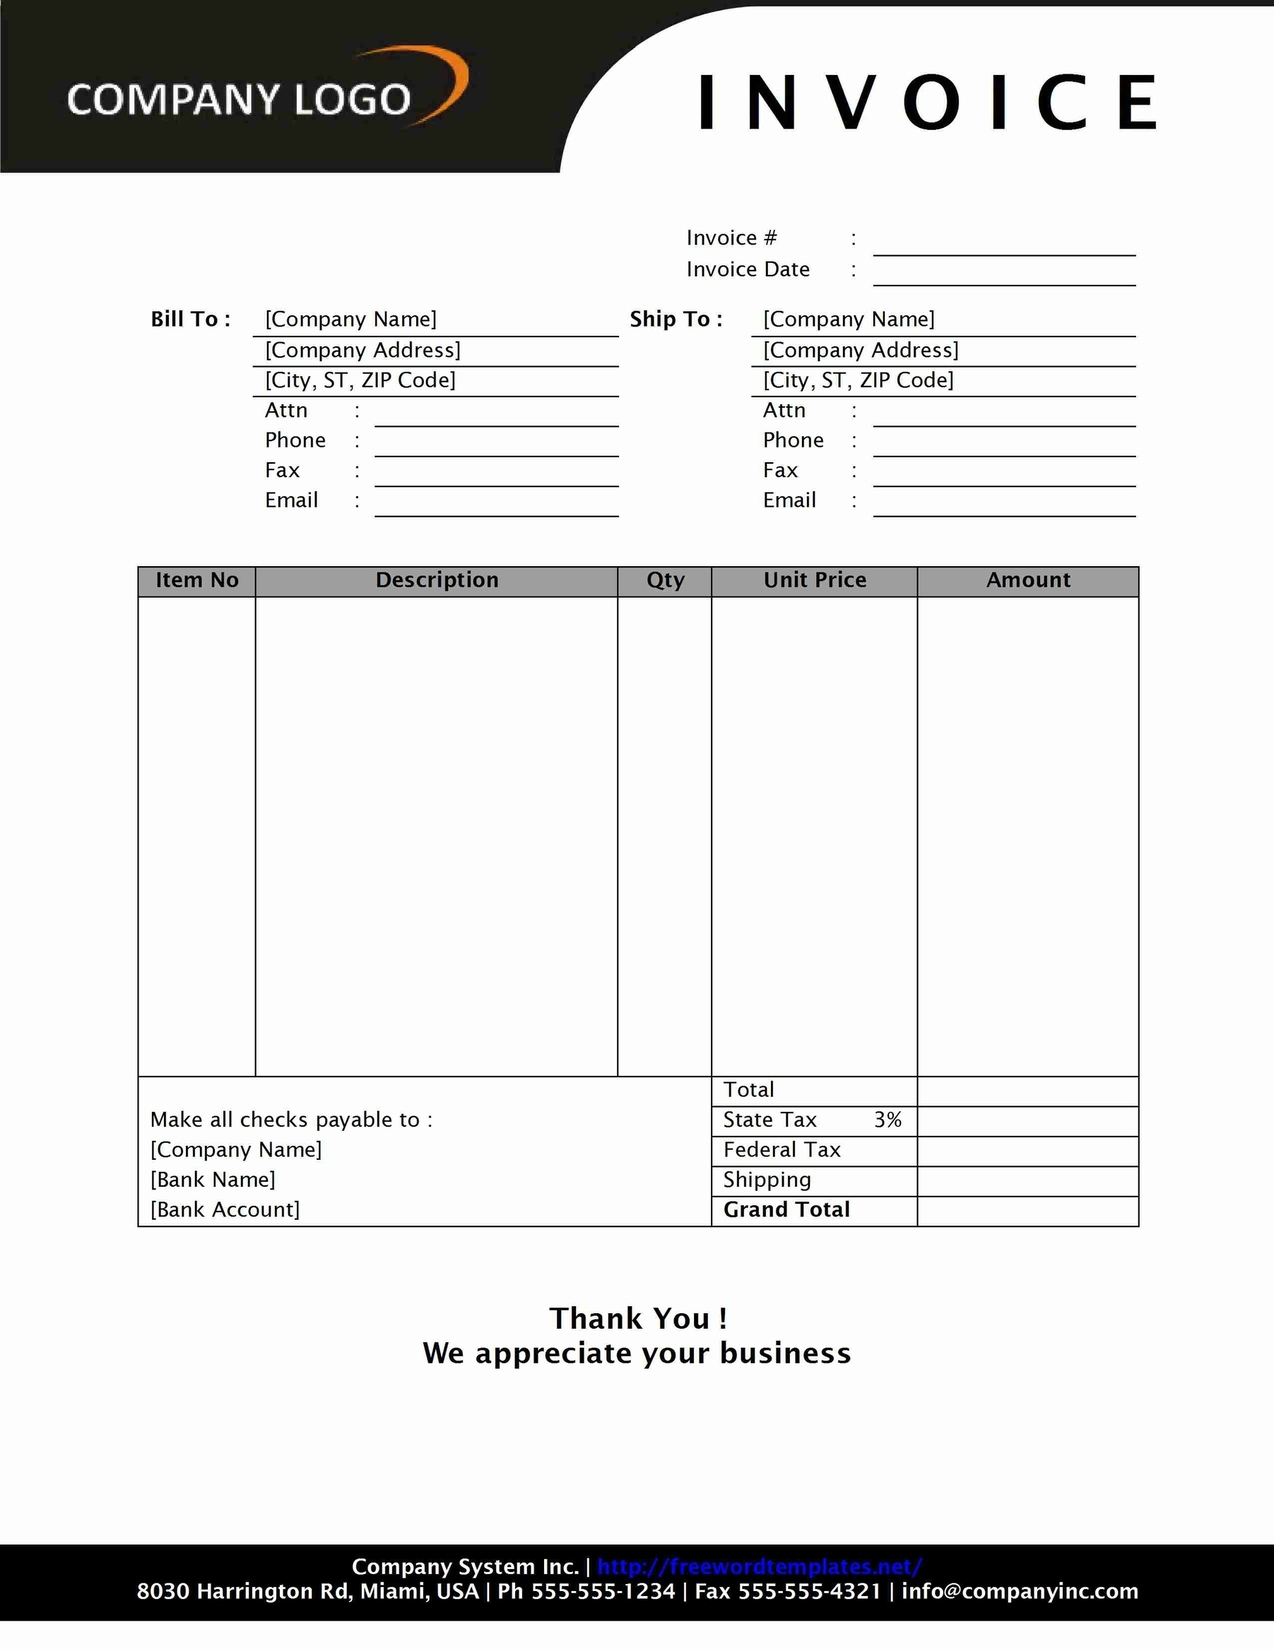 Sales Invoice Print Format With Fixed Table Length - Print Formats ...